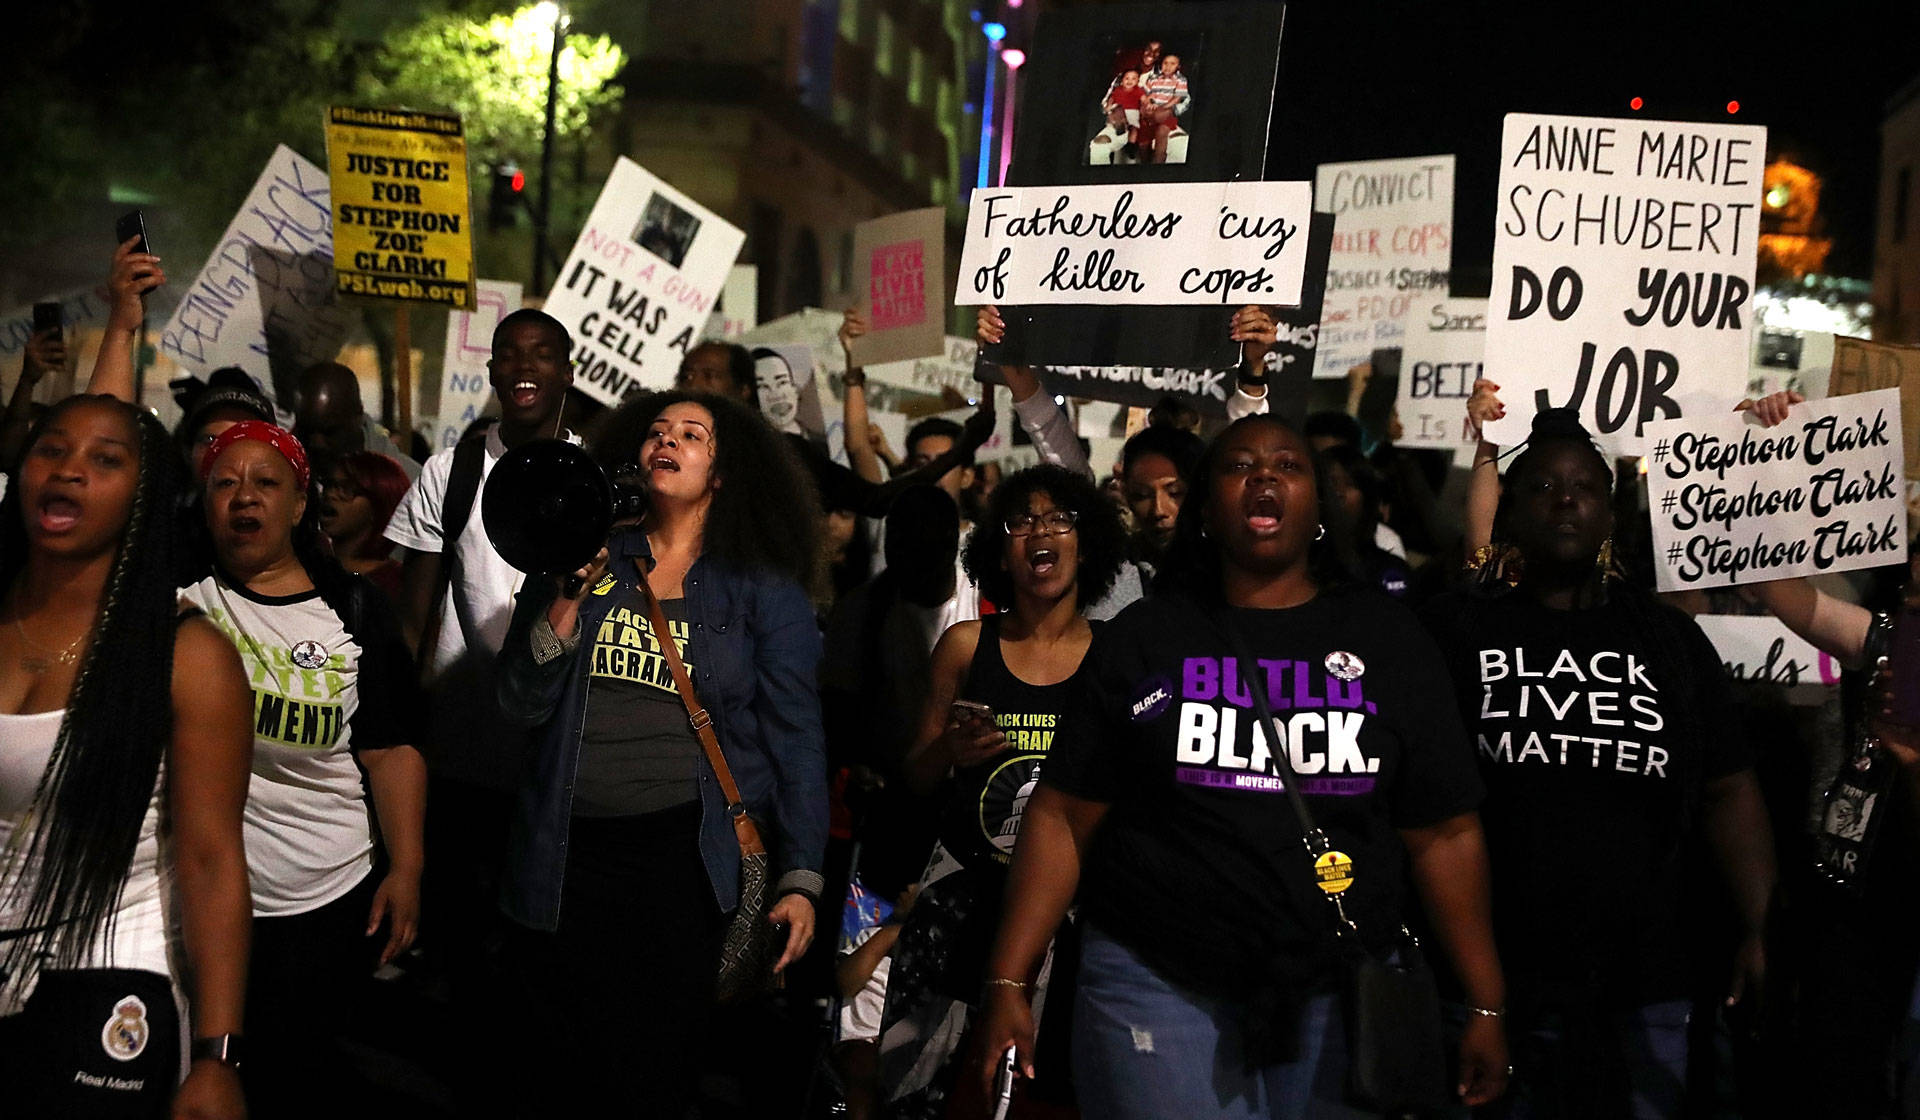 Black Lives Matter protesters march through the streets of Sacramento during a demonstration on March 30, 2018, one day after Stephon Clark's funeral. Justin Sullivan/Getty Images